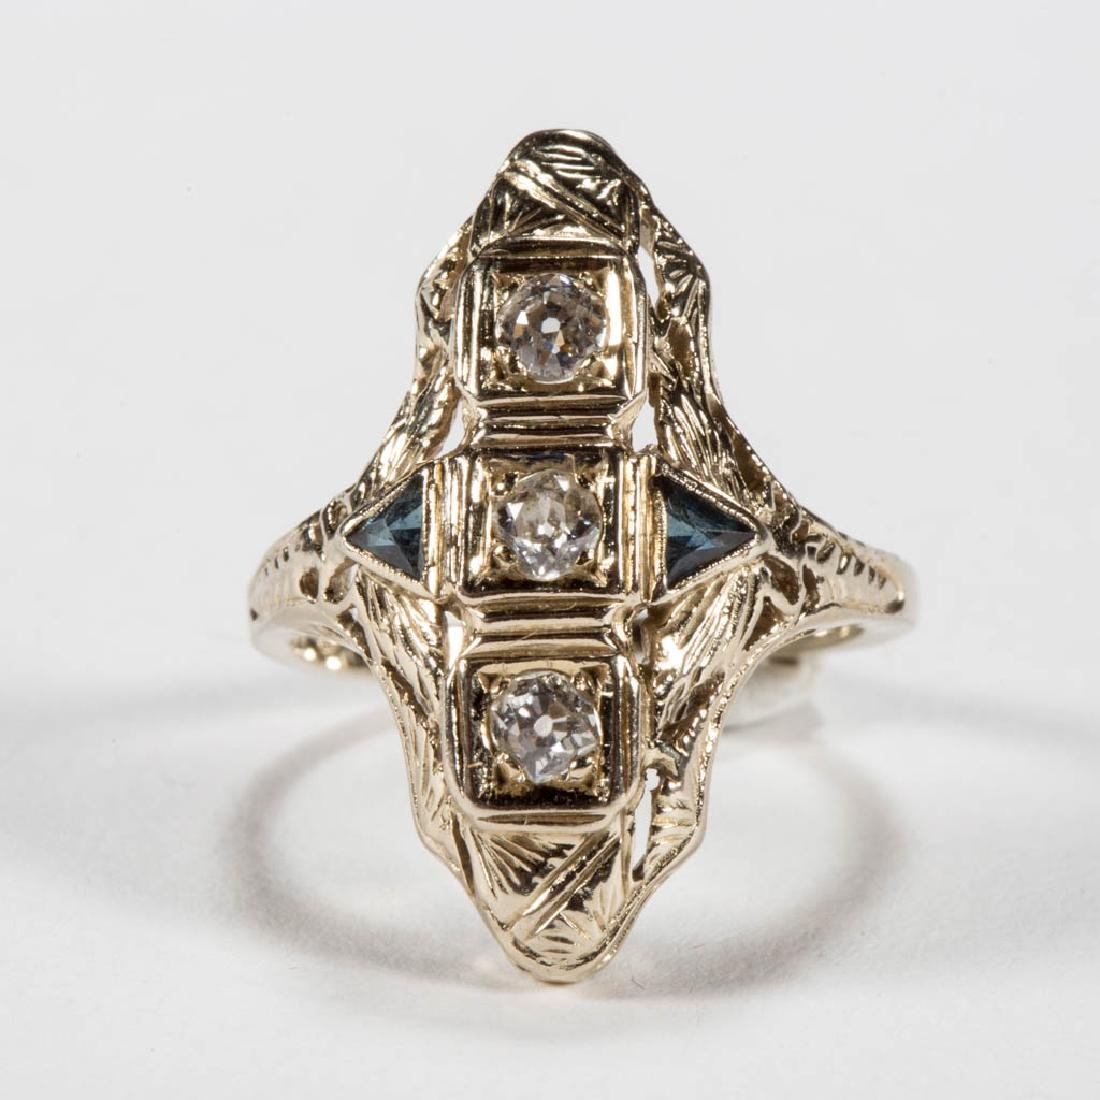 ART DECO 18K WHITE GOLD AND DIAMOND LADY'S RING